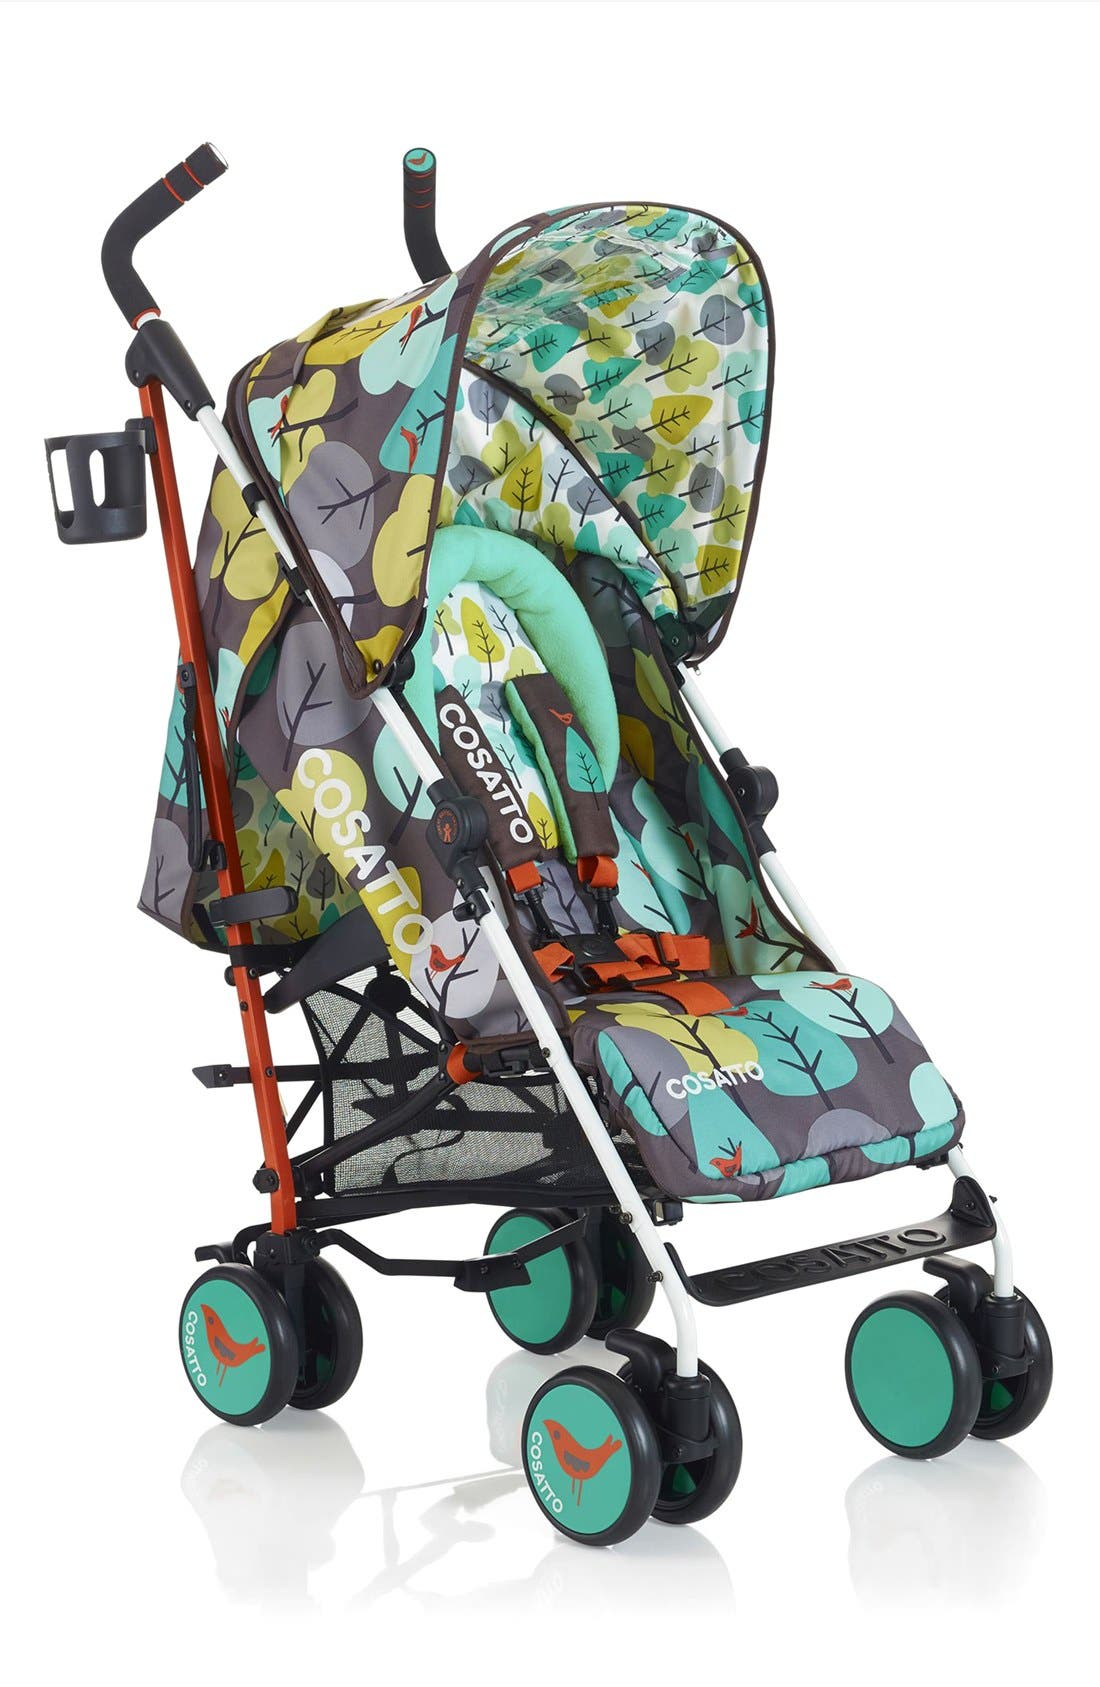 Main Image - Cosatto 'Supa - Firebird' Pushchair Stroller